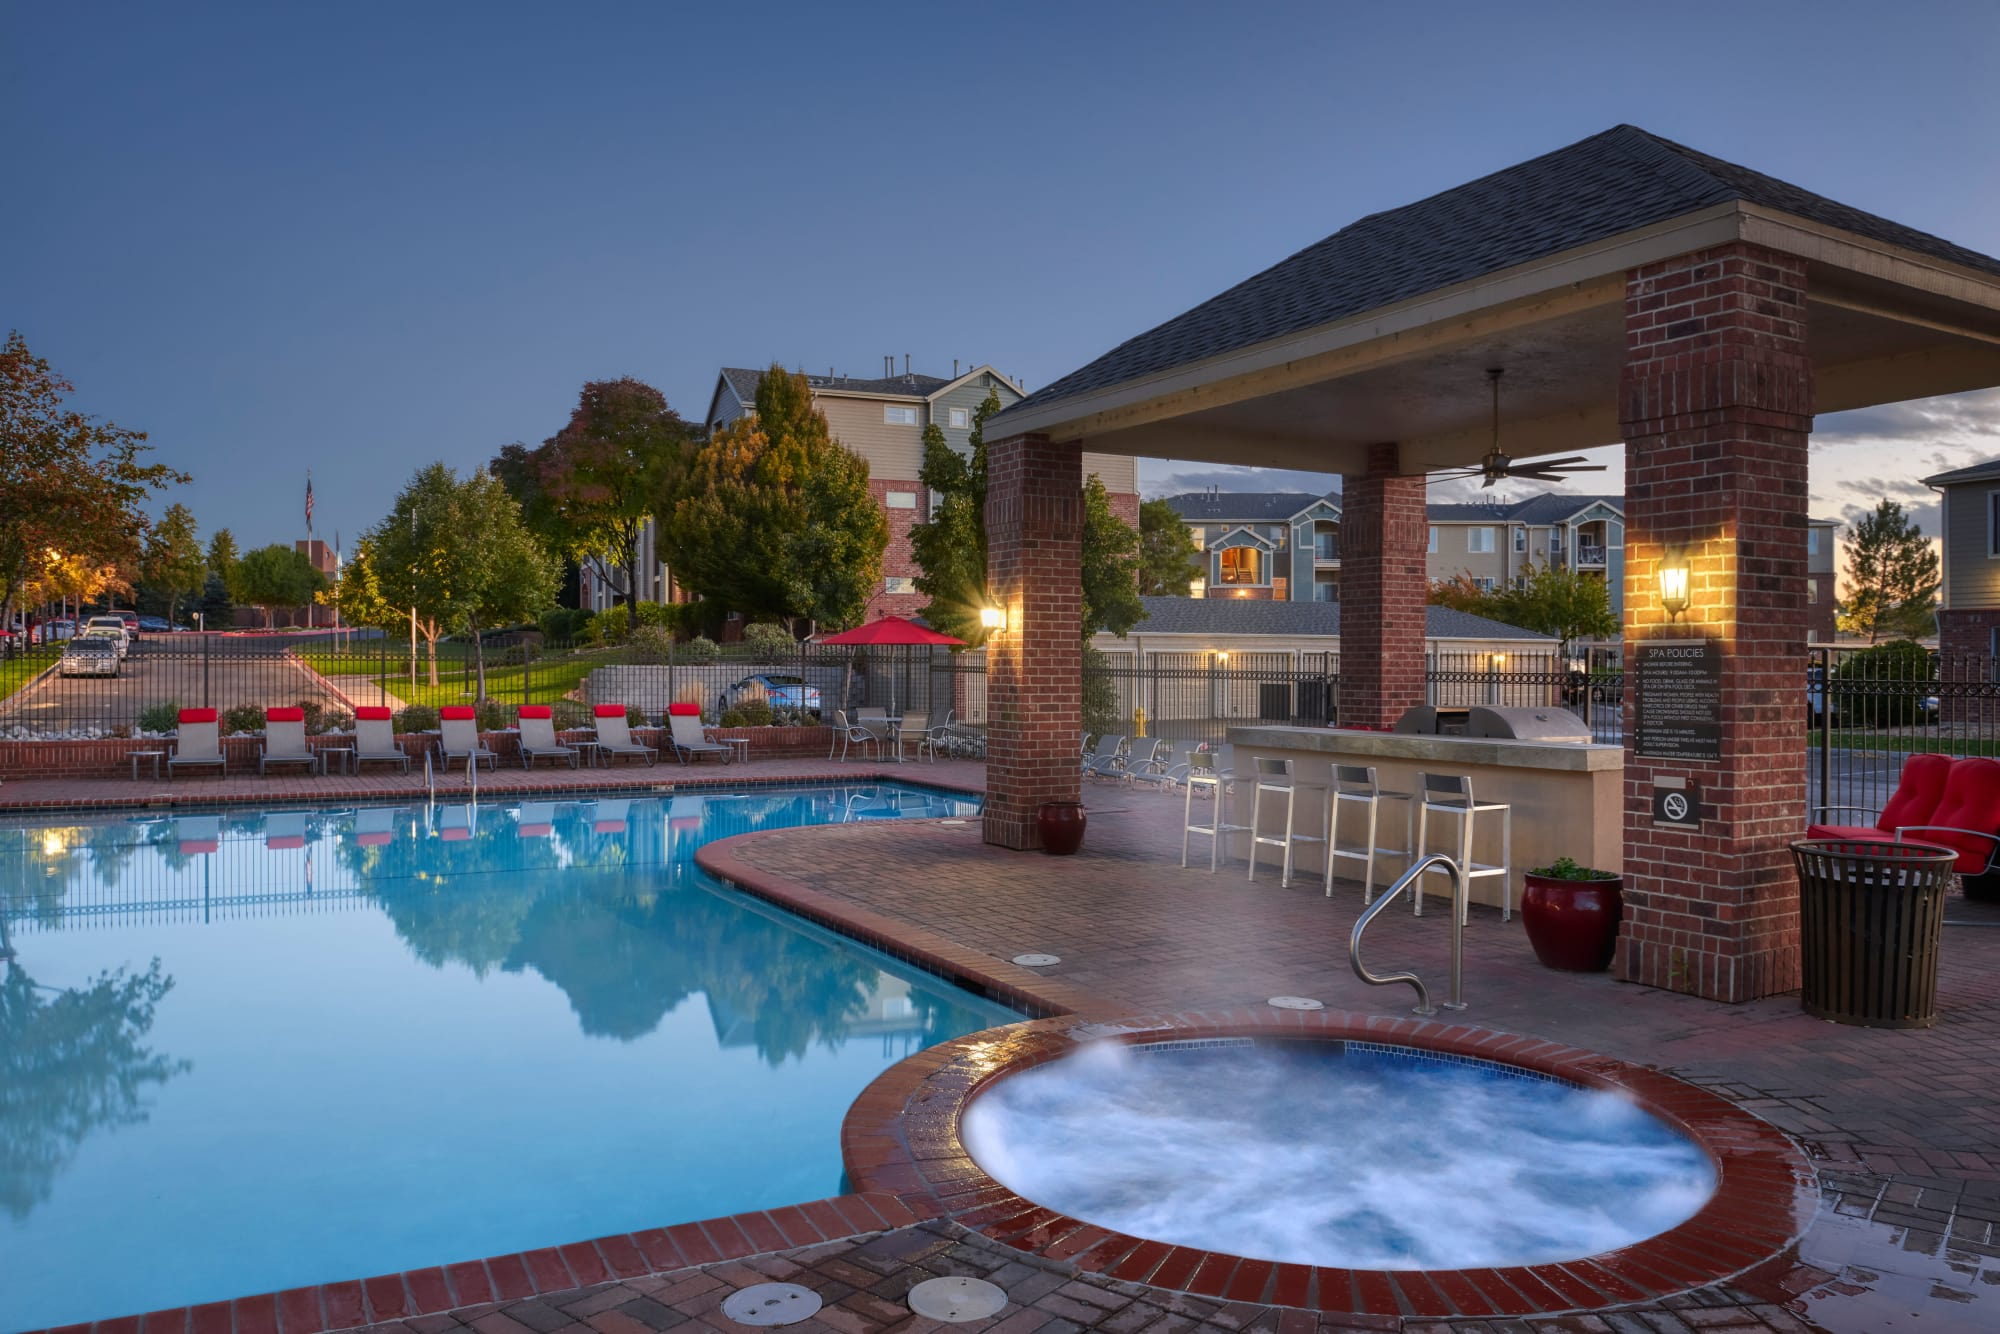 Bubbling spa and pool at sunrise at Promenade at Hunter's Glen Apartments in Thornton, Colorado